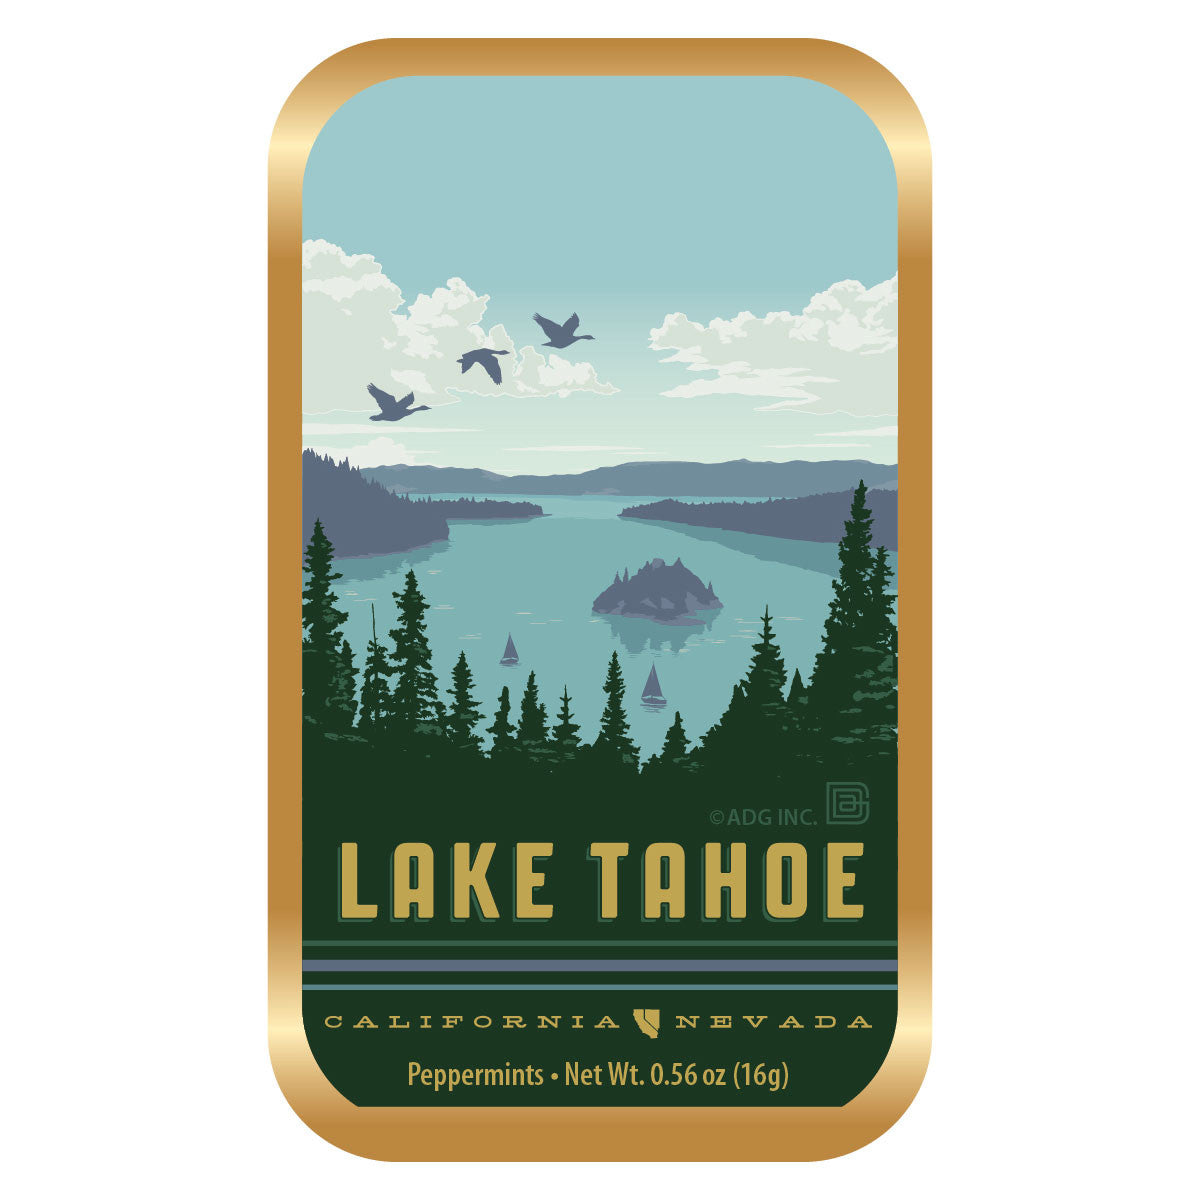 Lake Tahoe - 0127A